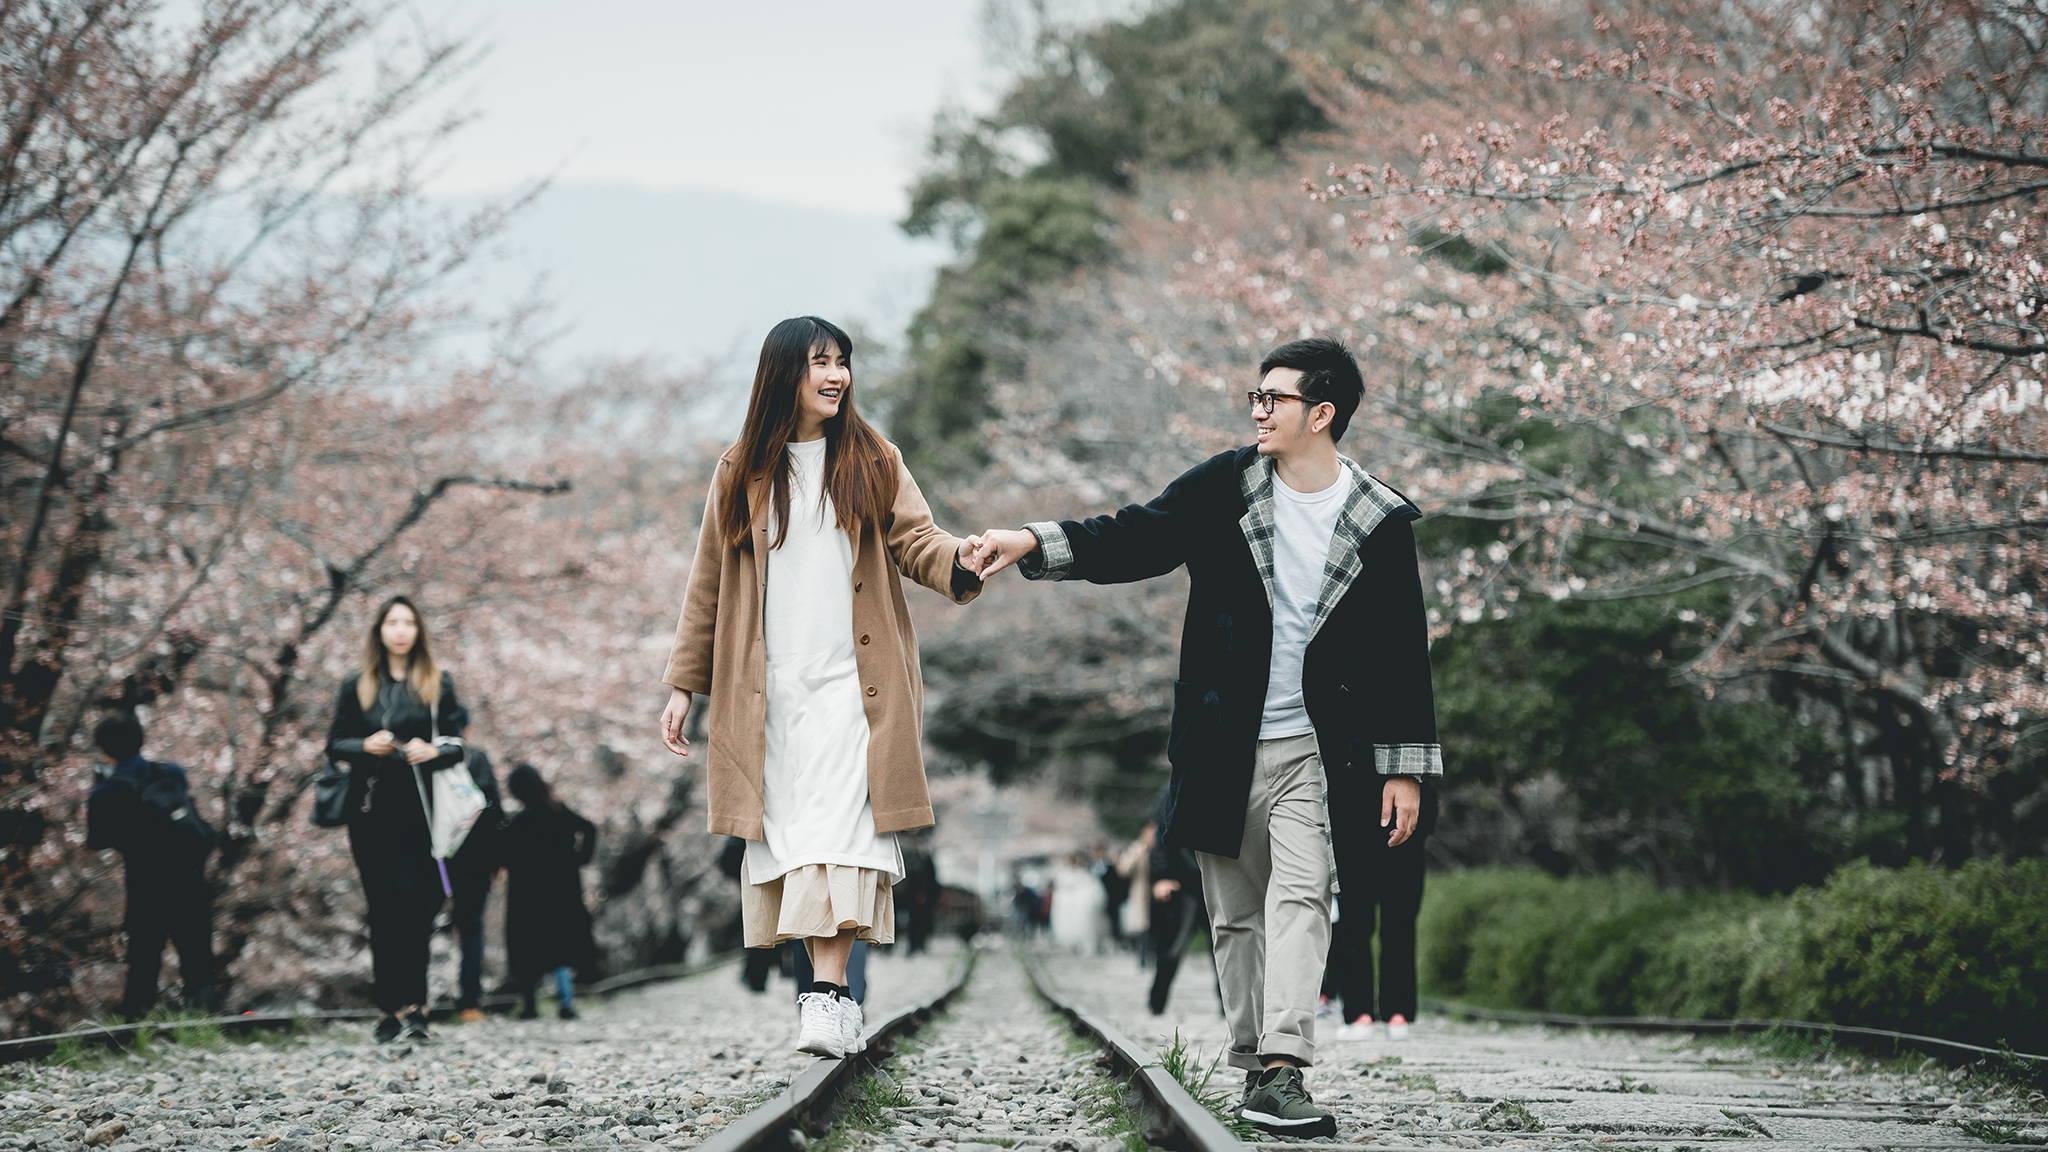 Prewedding Kyoto Keage Incline 00003.JPG